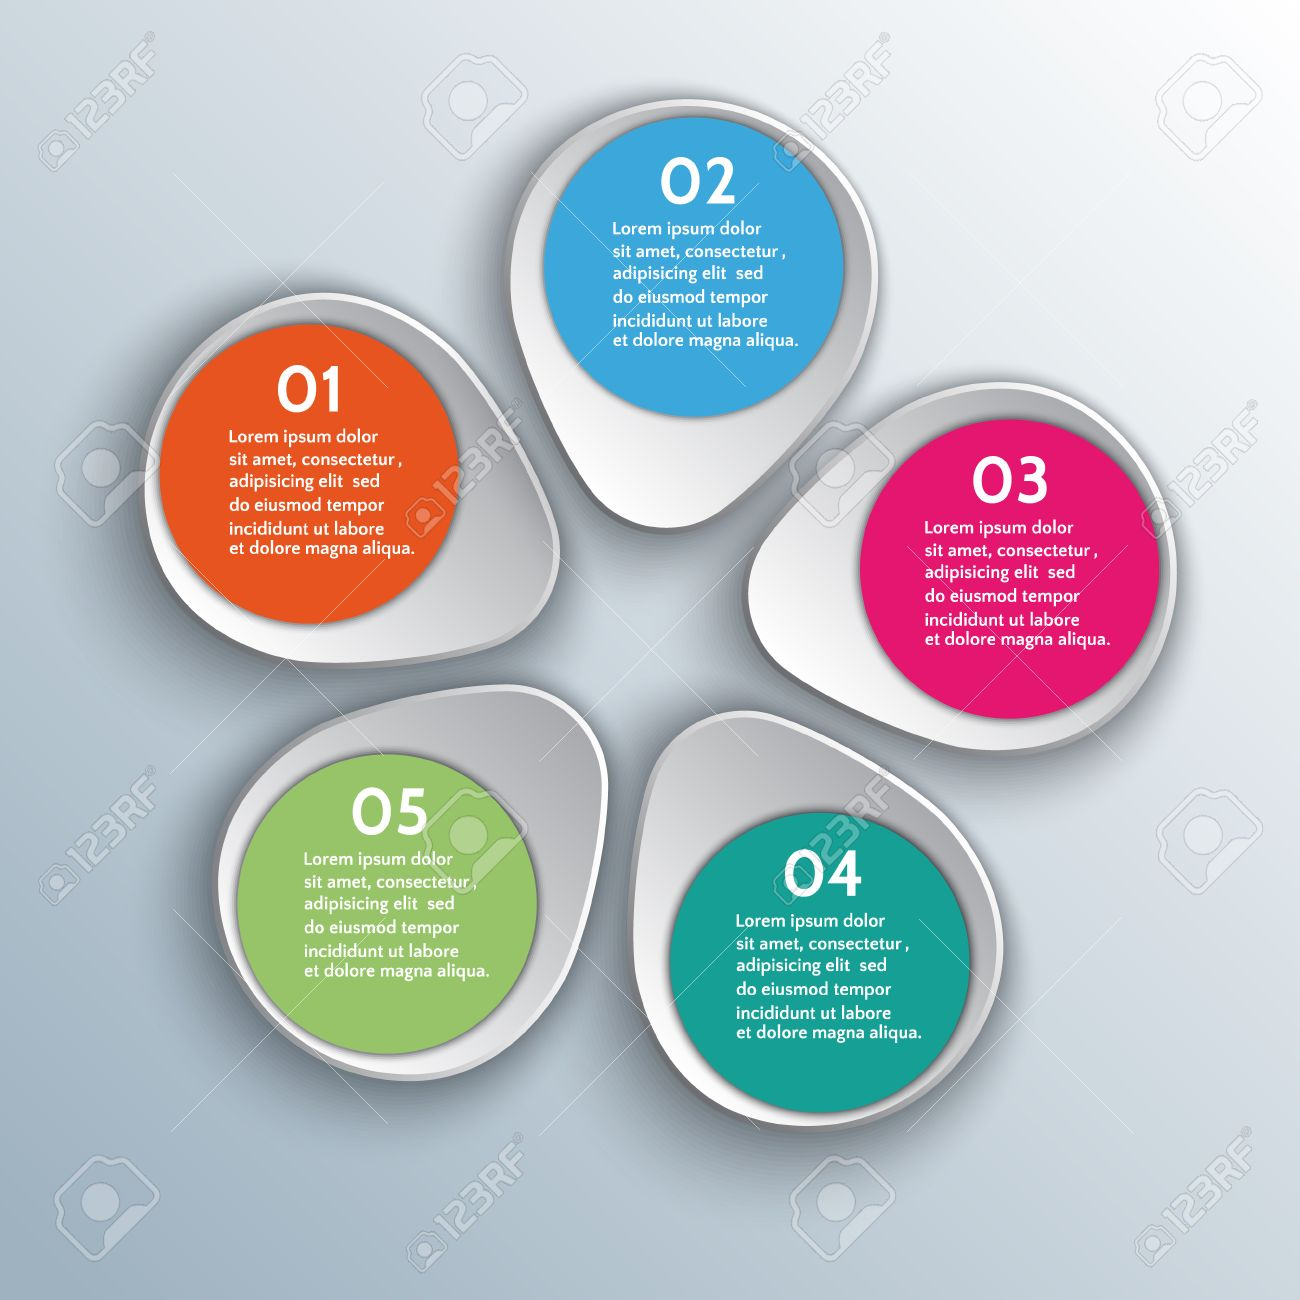 Infographic Design Elements In 3D Style Royalty Free Cliparts ...